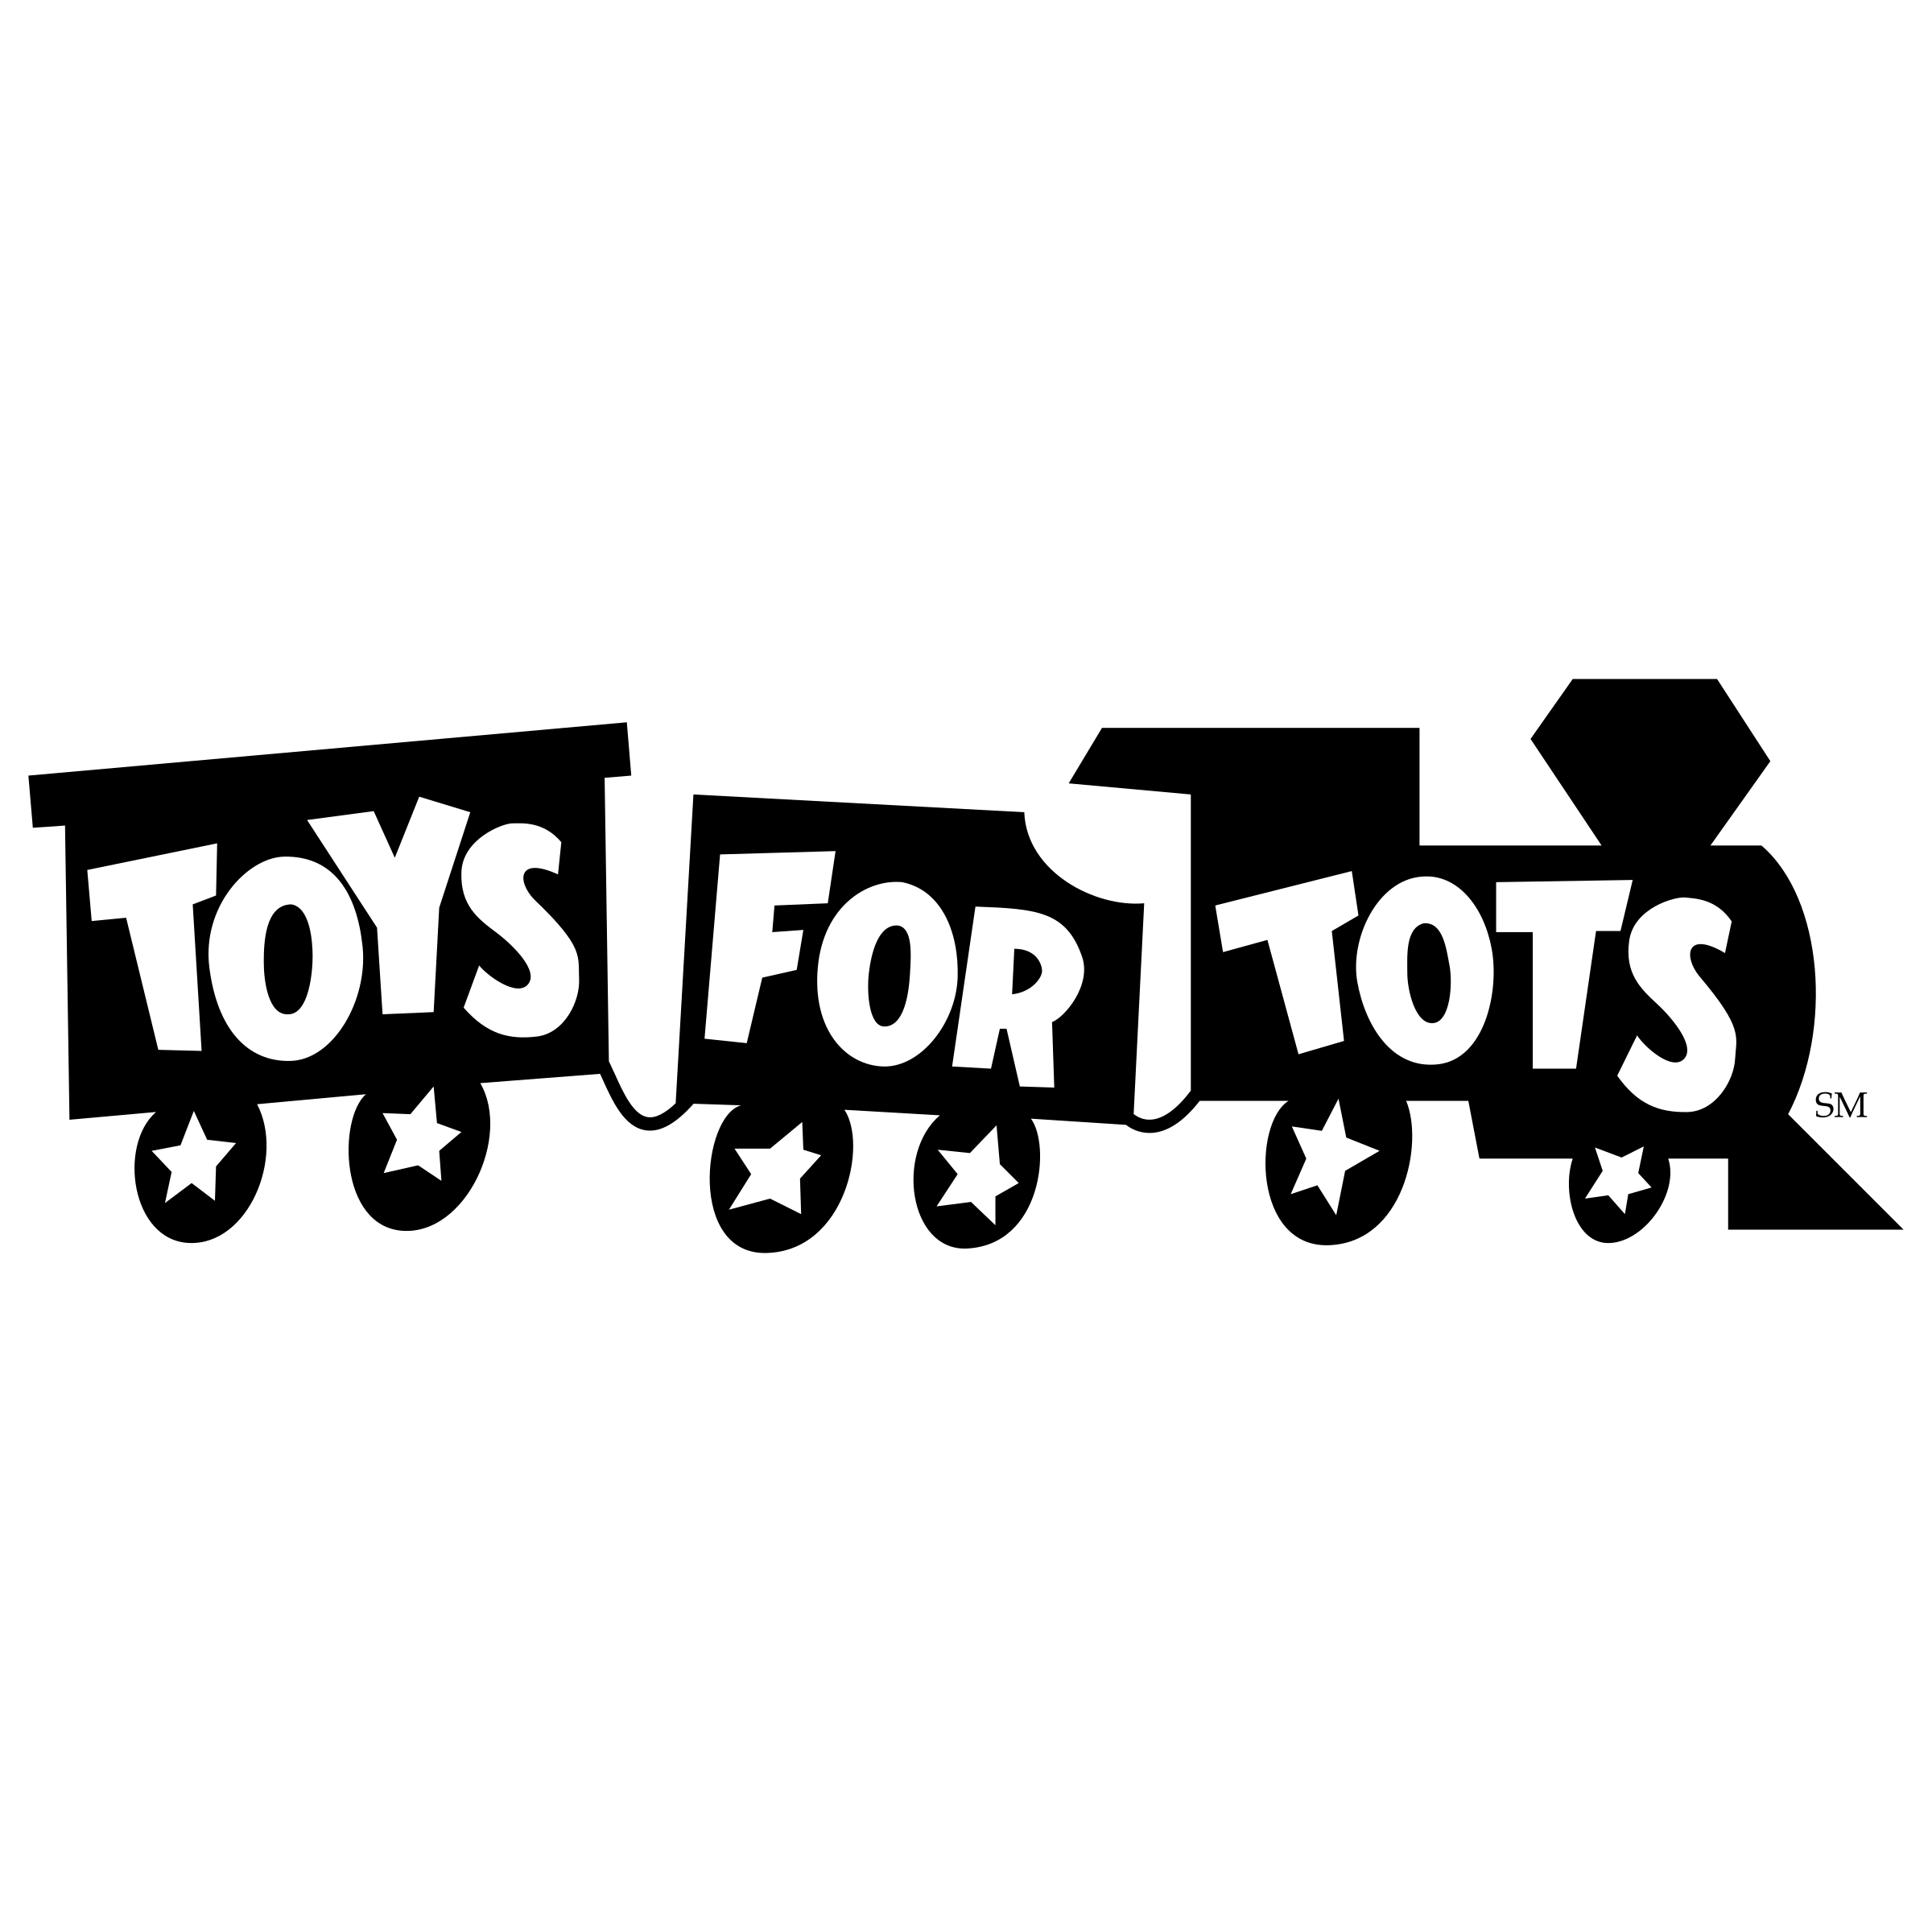 Black And White Toys For Tots : Toys for tots logo png transparent svg vector freebie